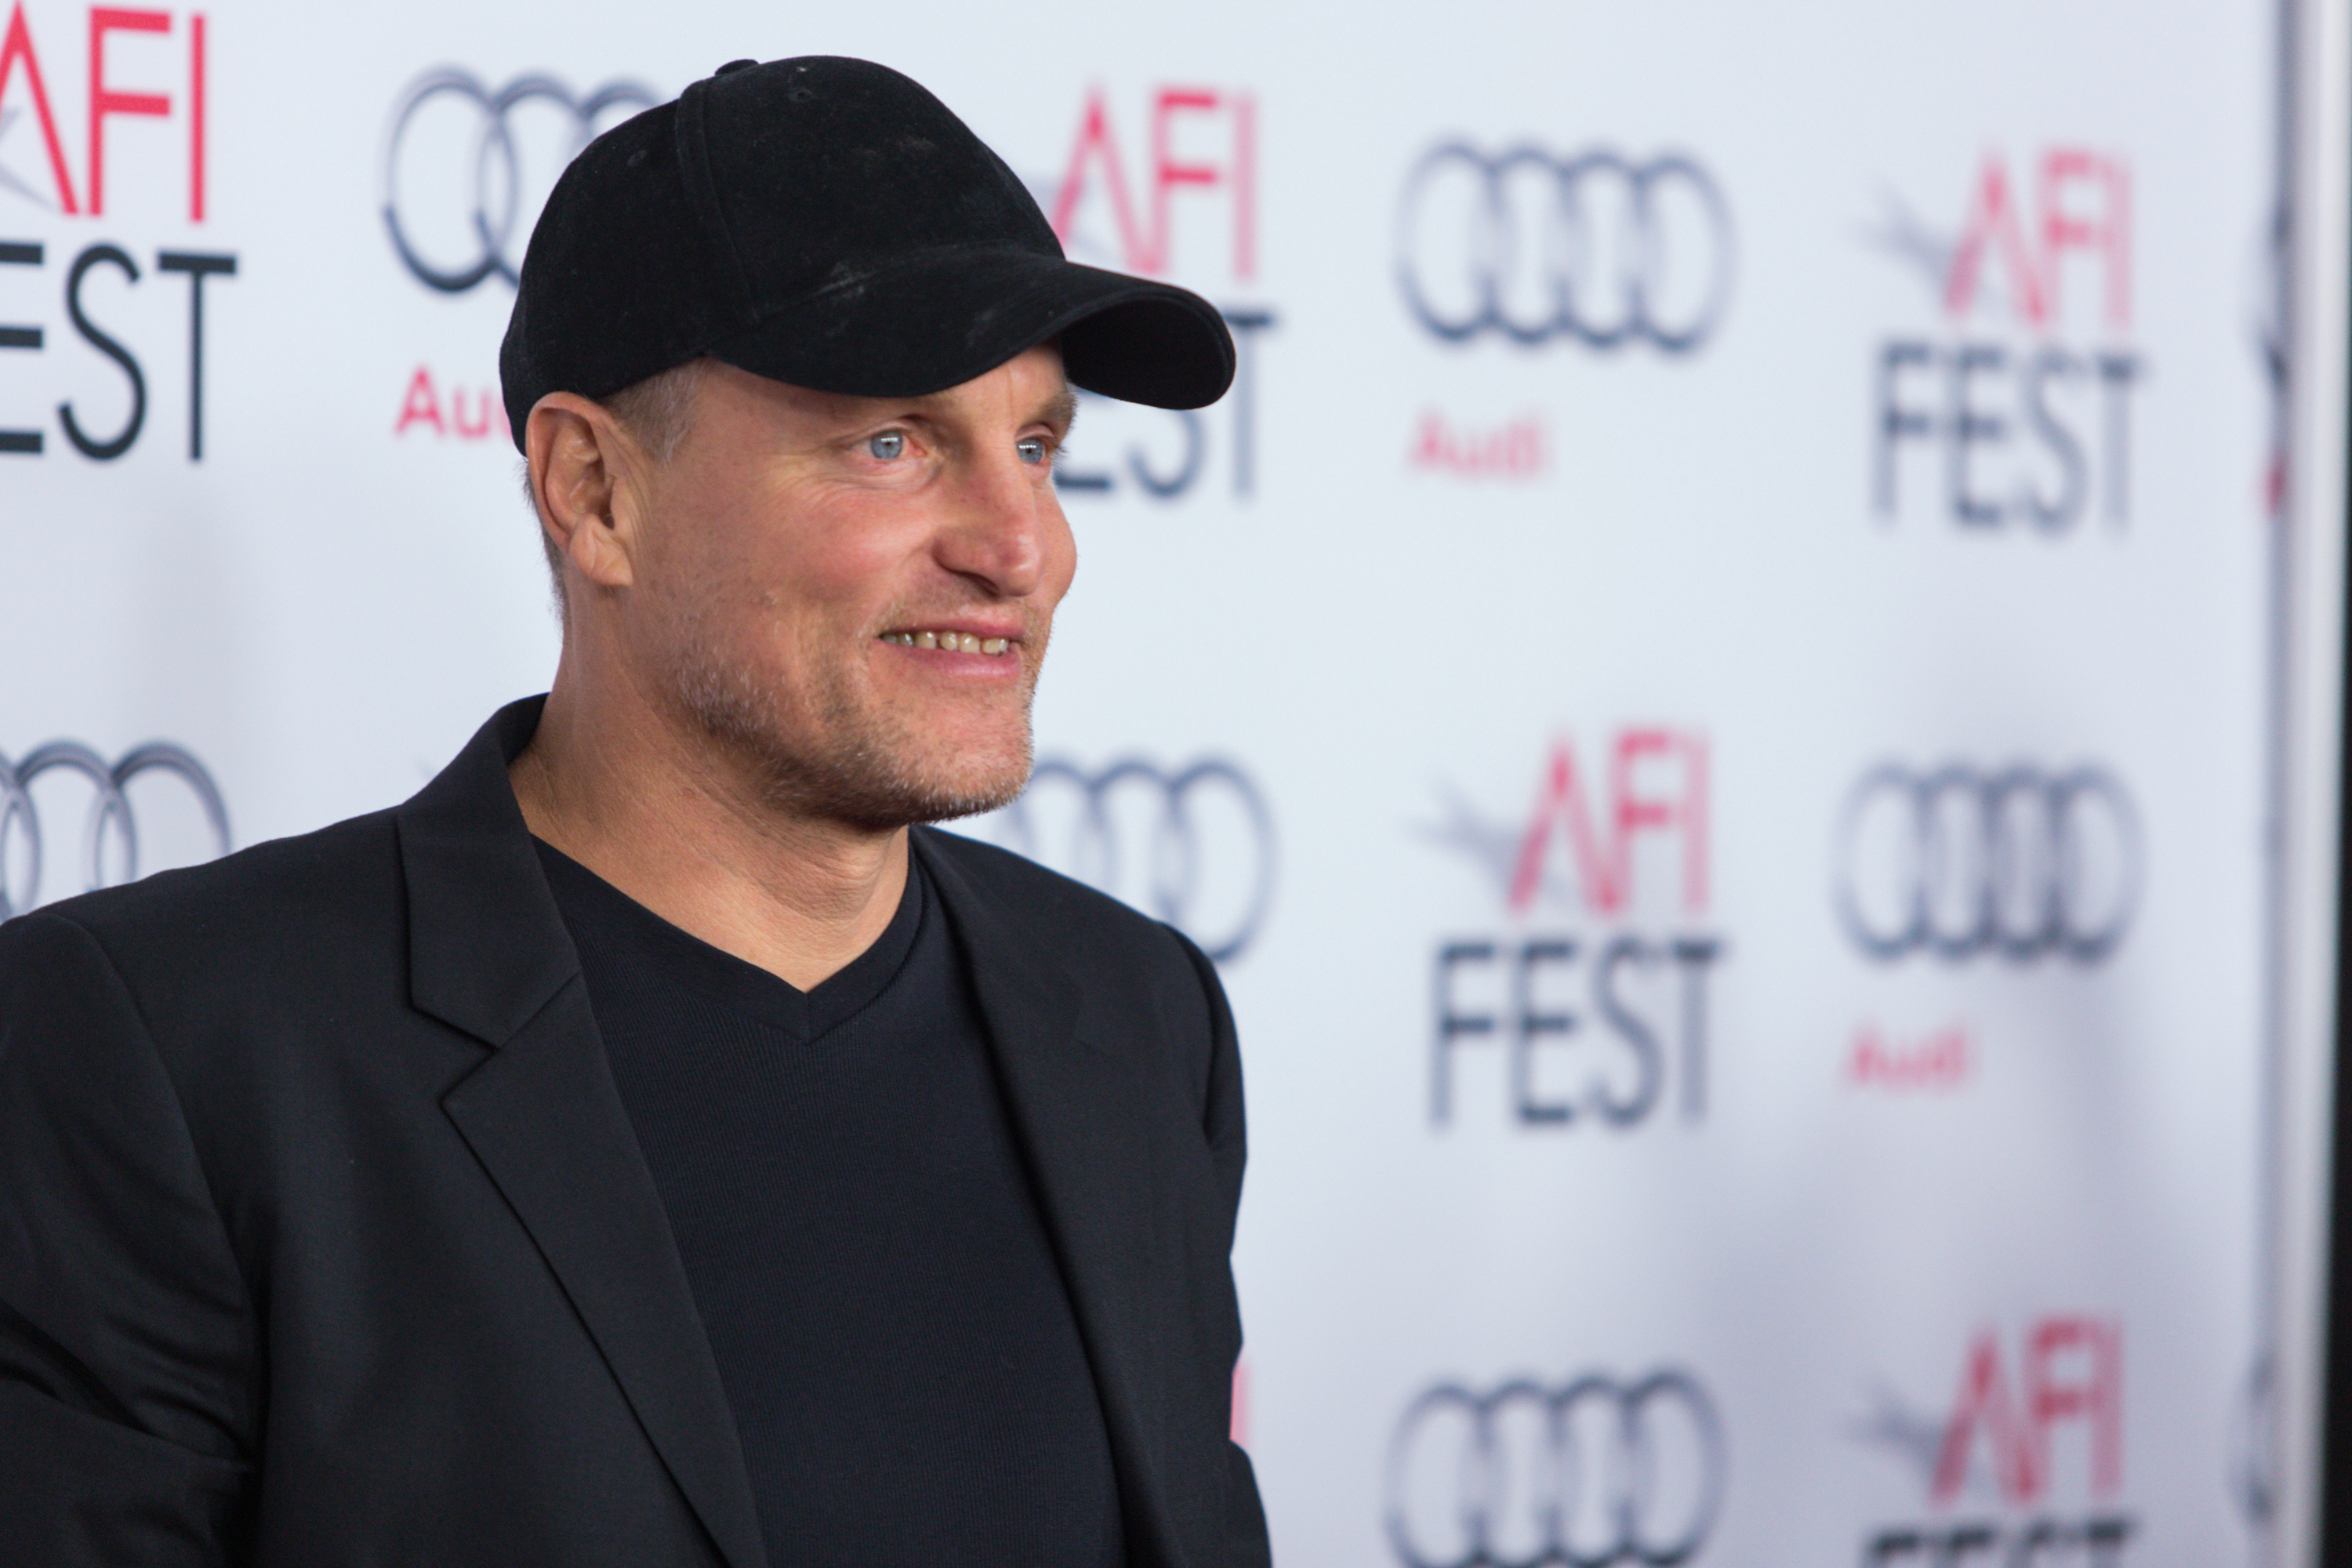 Actor Woody Harrelson arrives at the 2013 AFI Fest premiere of  Out of the Furnace  at the TCL Chinese Theatre on Saturday, Nov. 9, 2013 in Los Angeles. (Photo by Paul A. Hebert/Invision/AP)